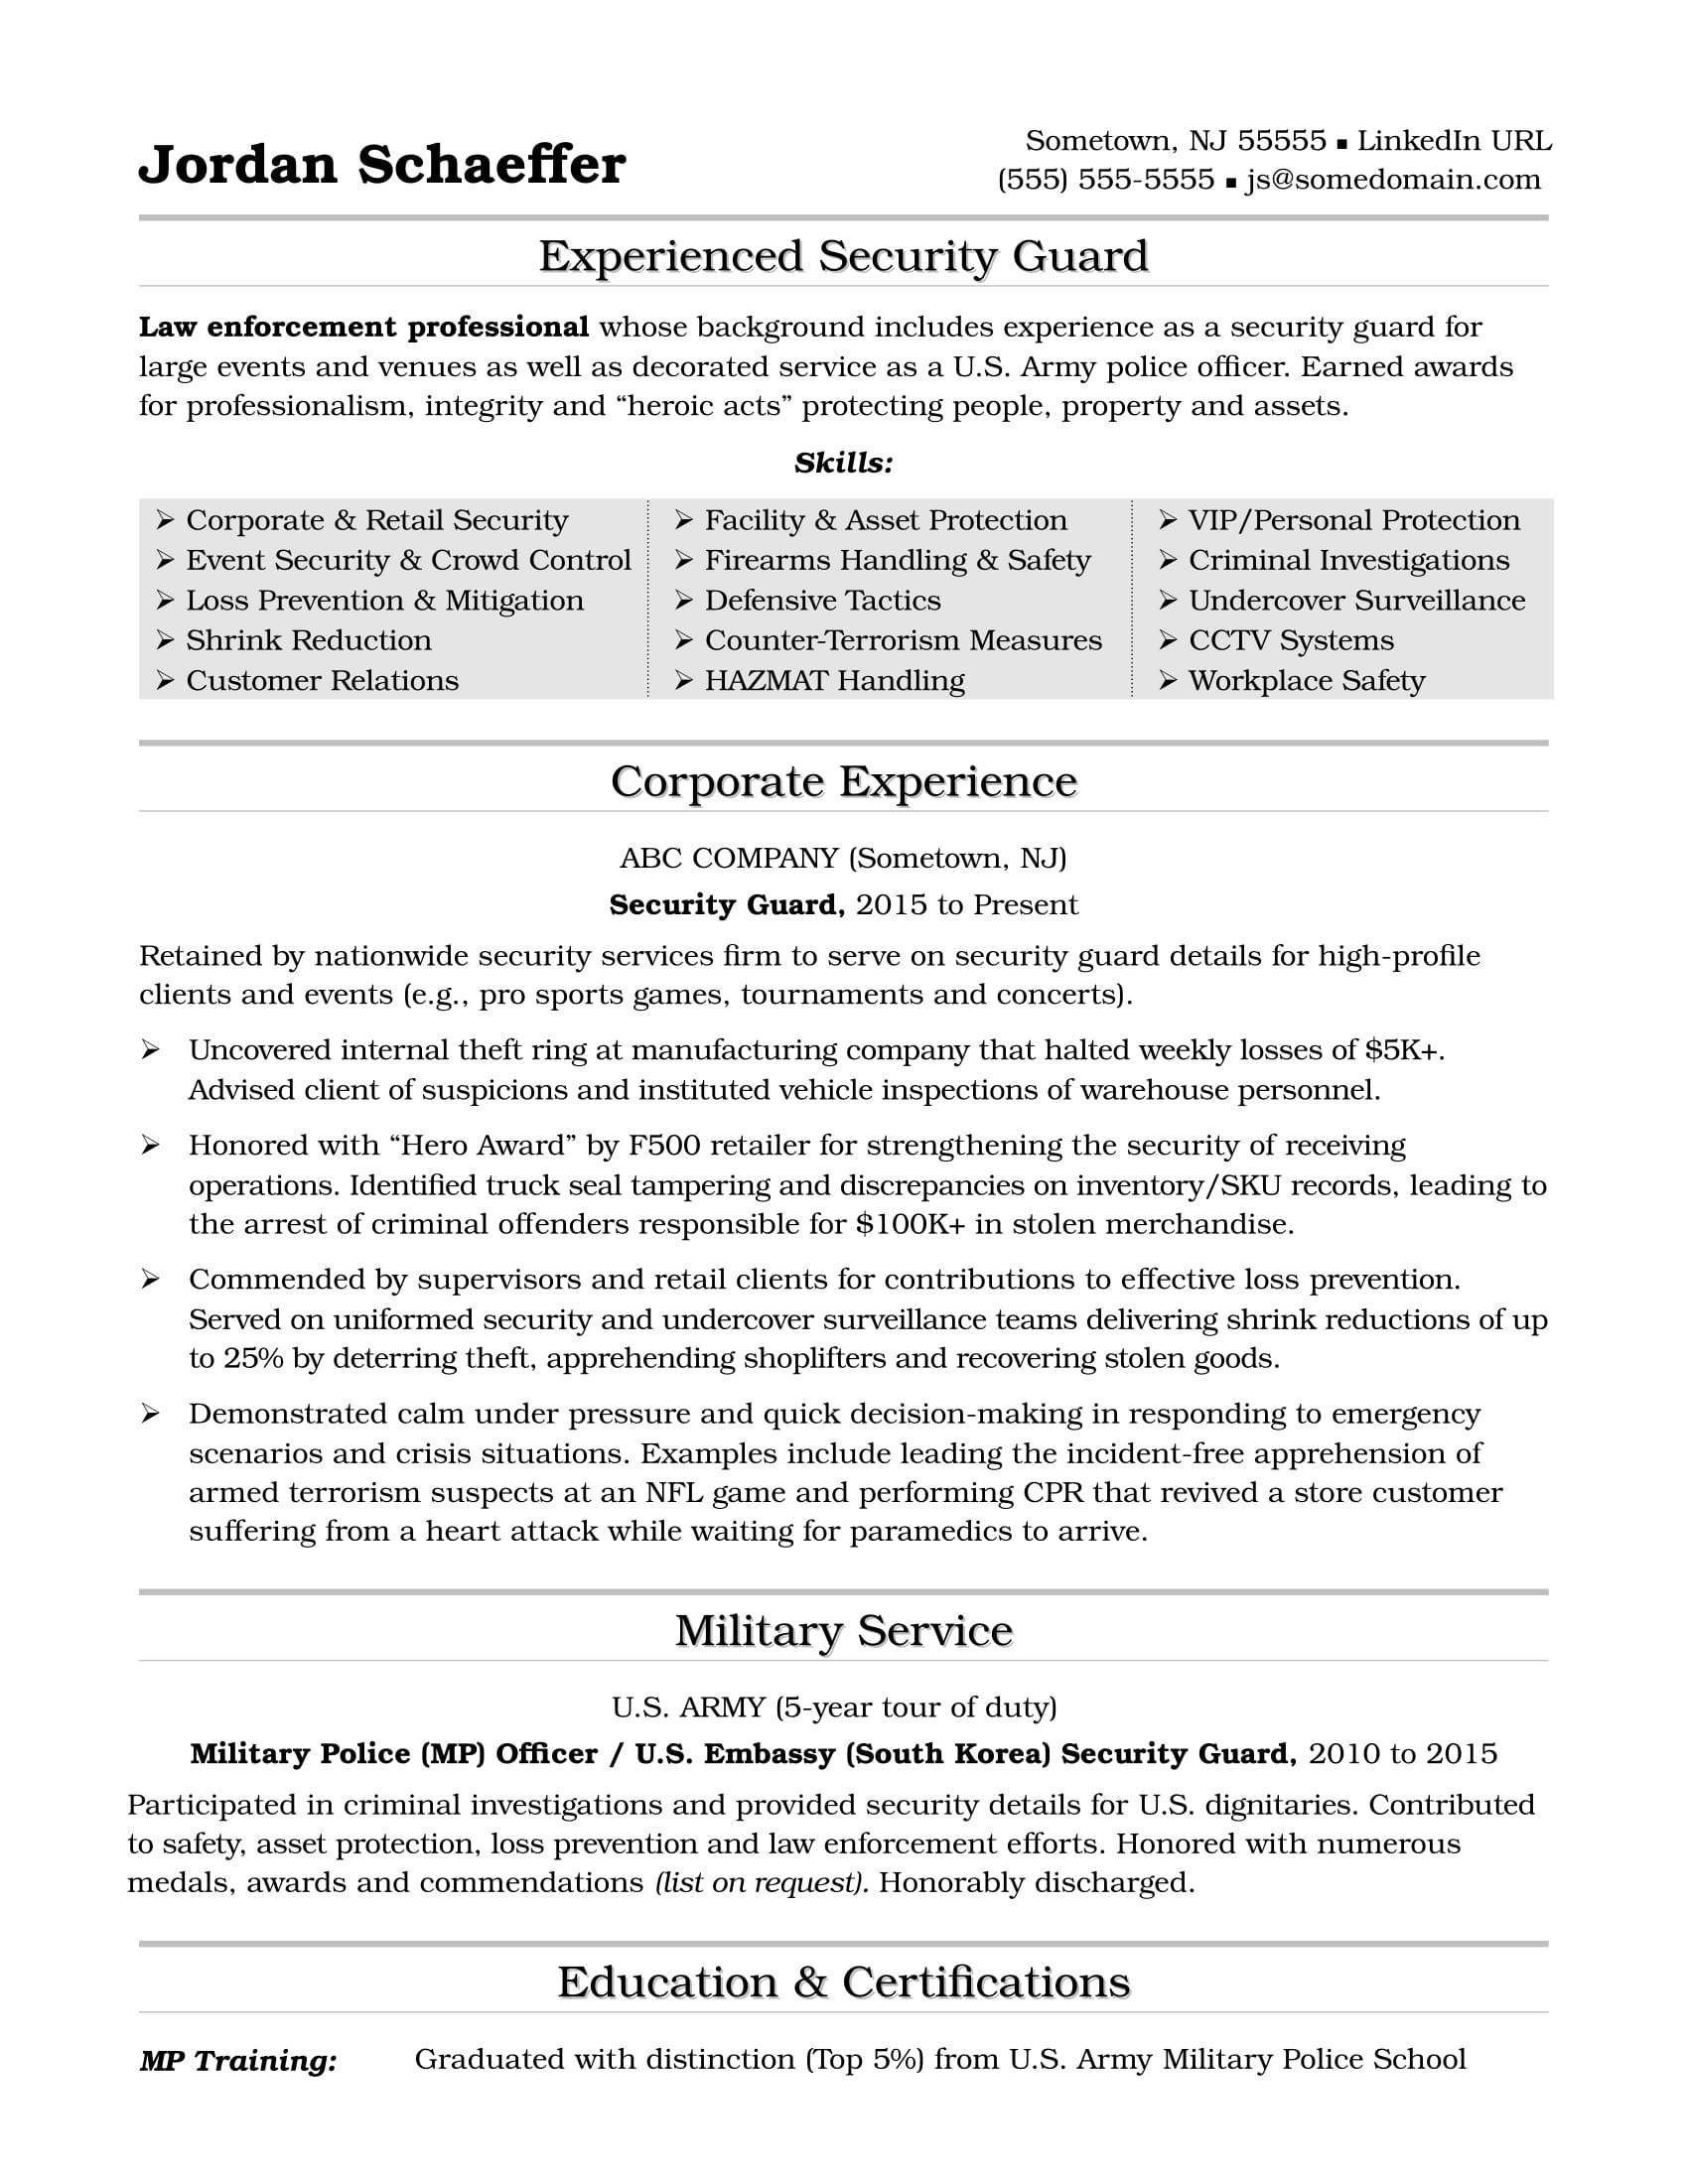 Resume Sample For Experienced Fascinating Security Guard Resume Sample  Sample Resume And Career Advice